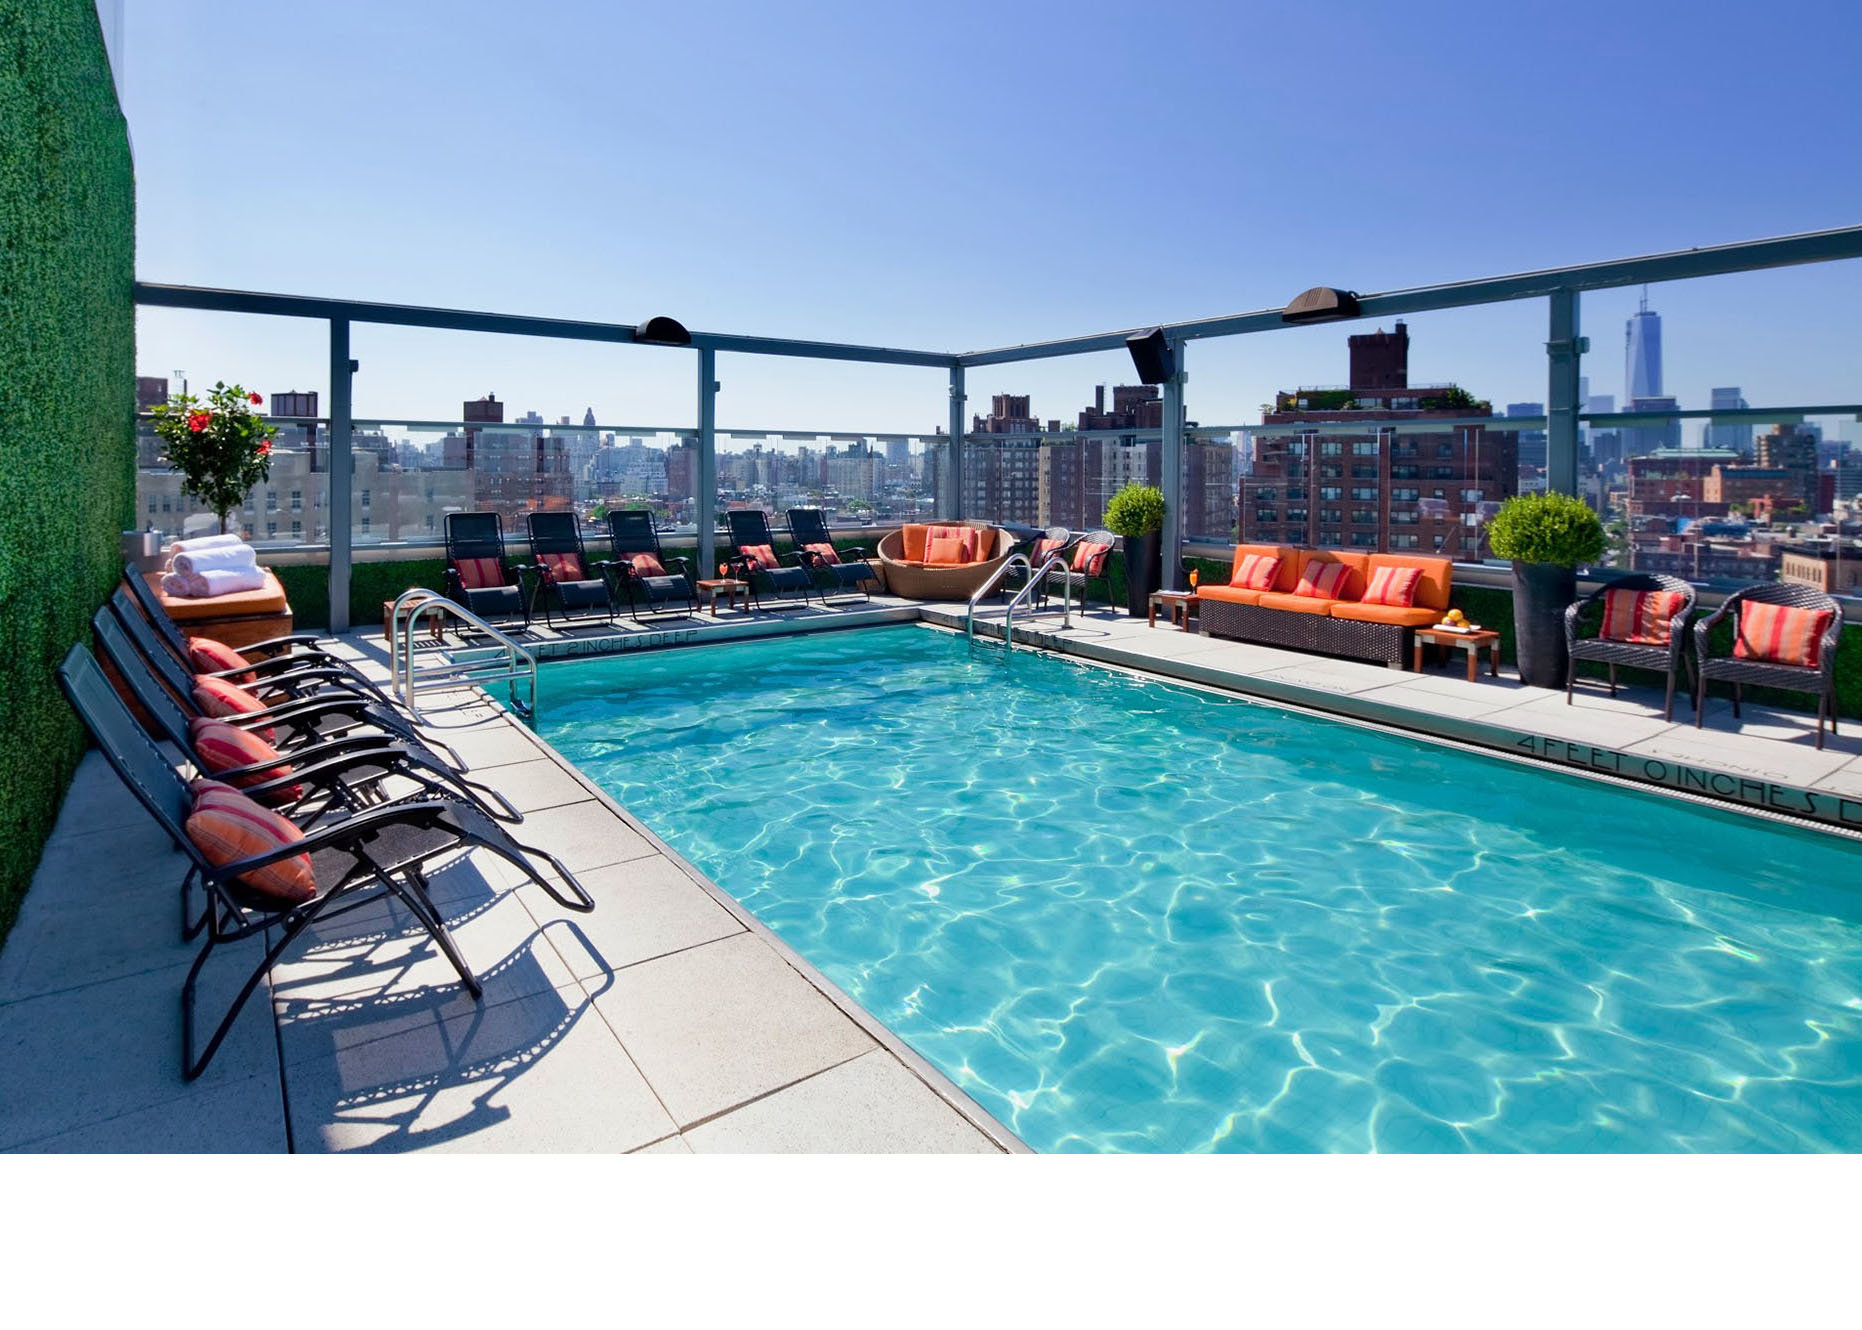 Rooftop Pools The Best Rooftop Swimming Pools In America